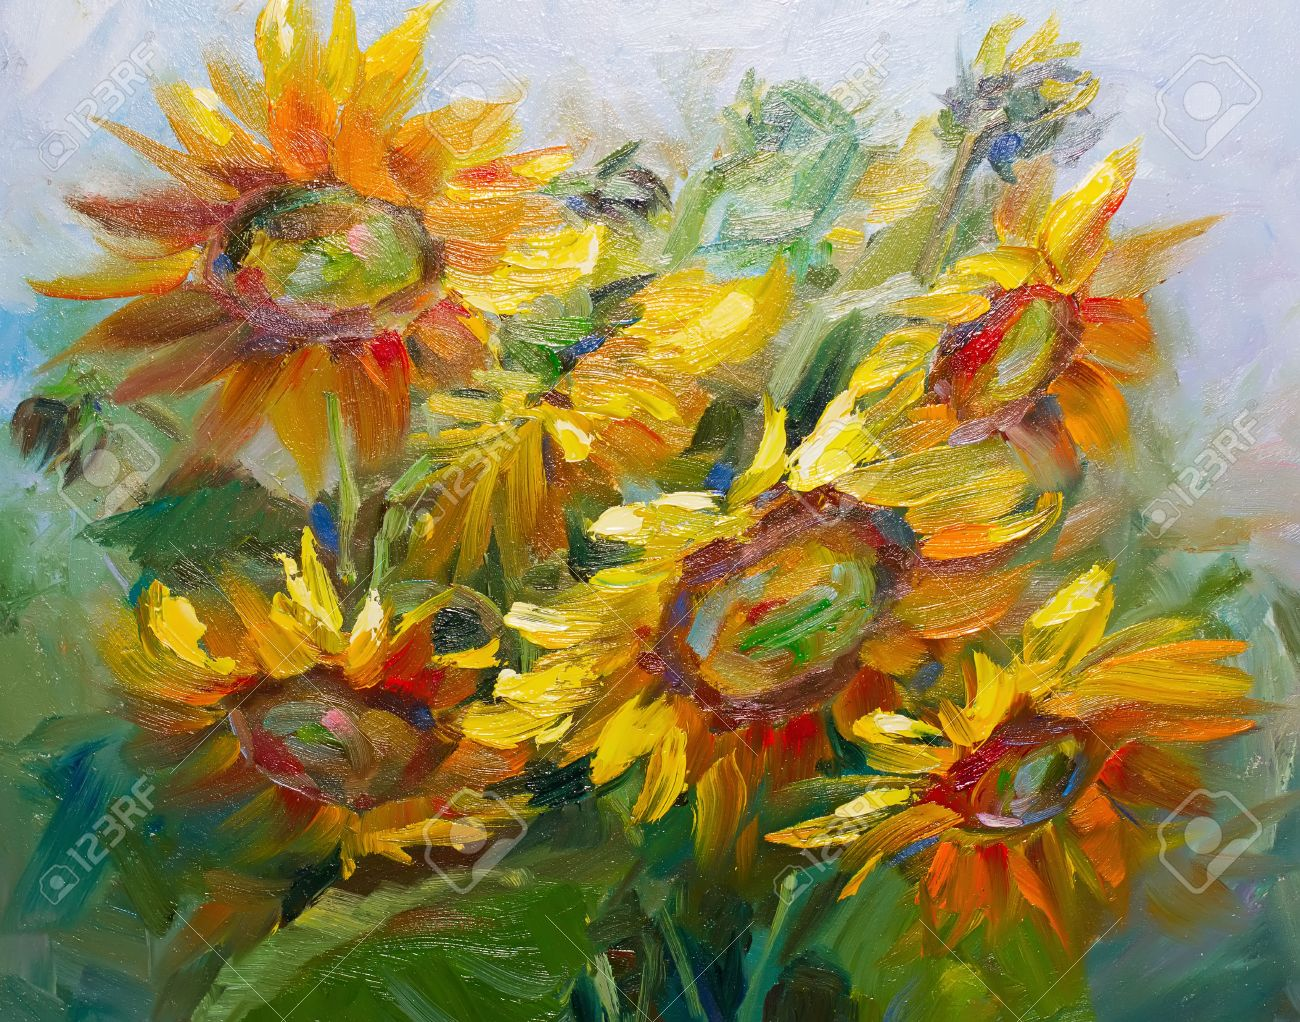 Texture Oil Painting Flowers Art Painted Color Image Paint Wallpaper And